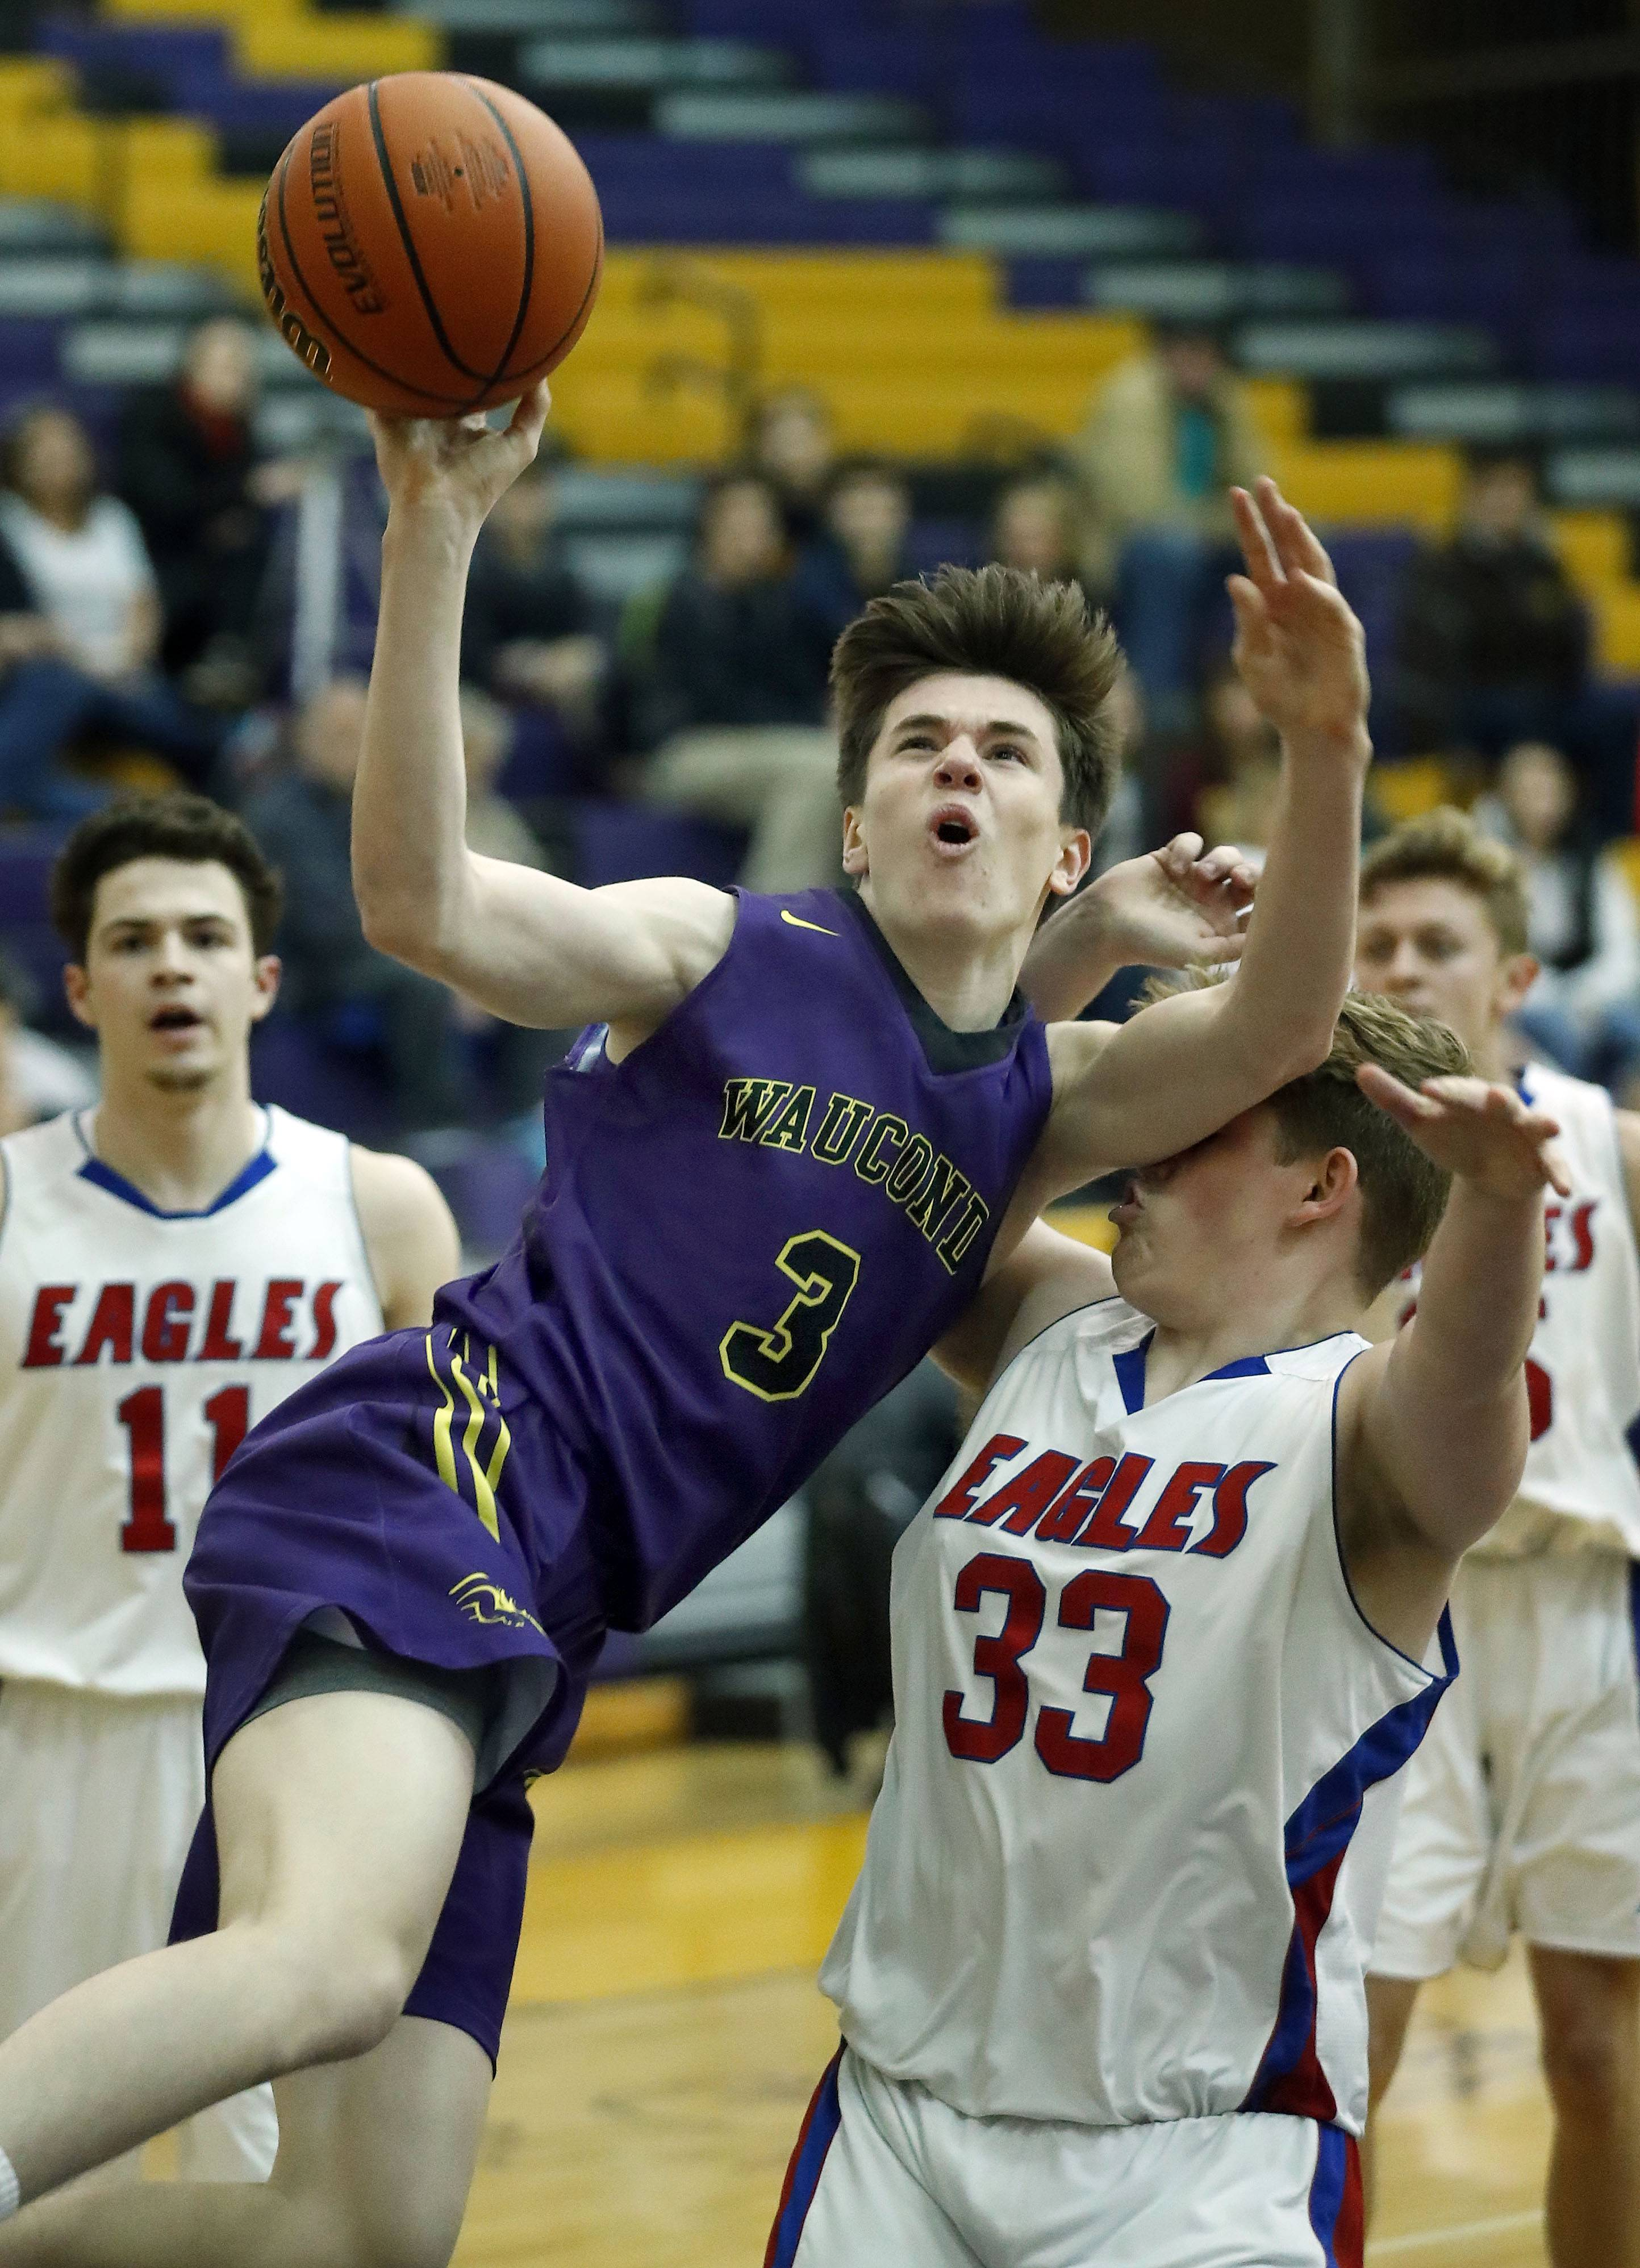 Wauconda's Nick Bulgarelli (3) drives on Lakes' Tylor Gunther during Class 3A regional semifinal play Tuesday at Wauconda.